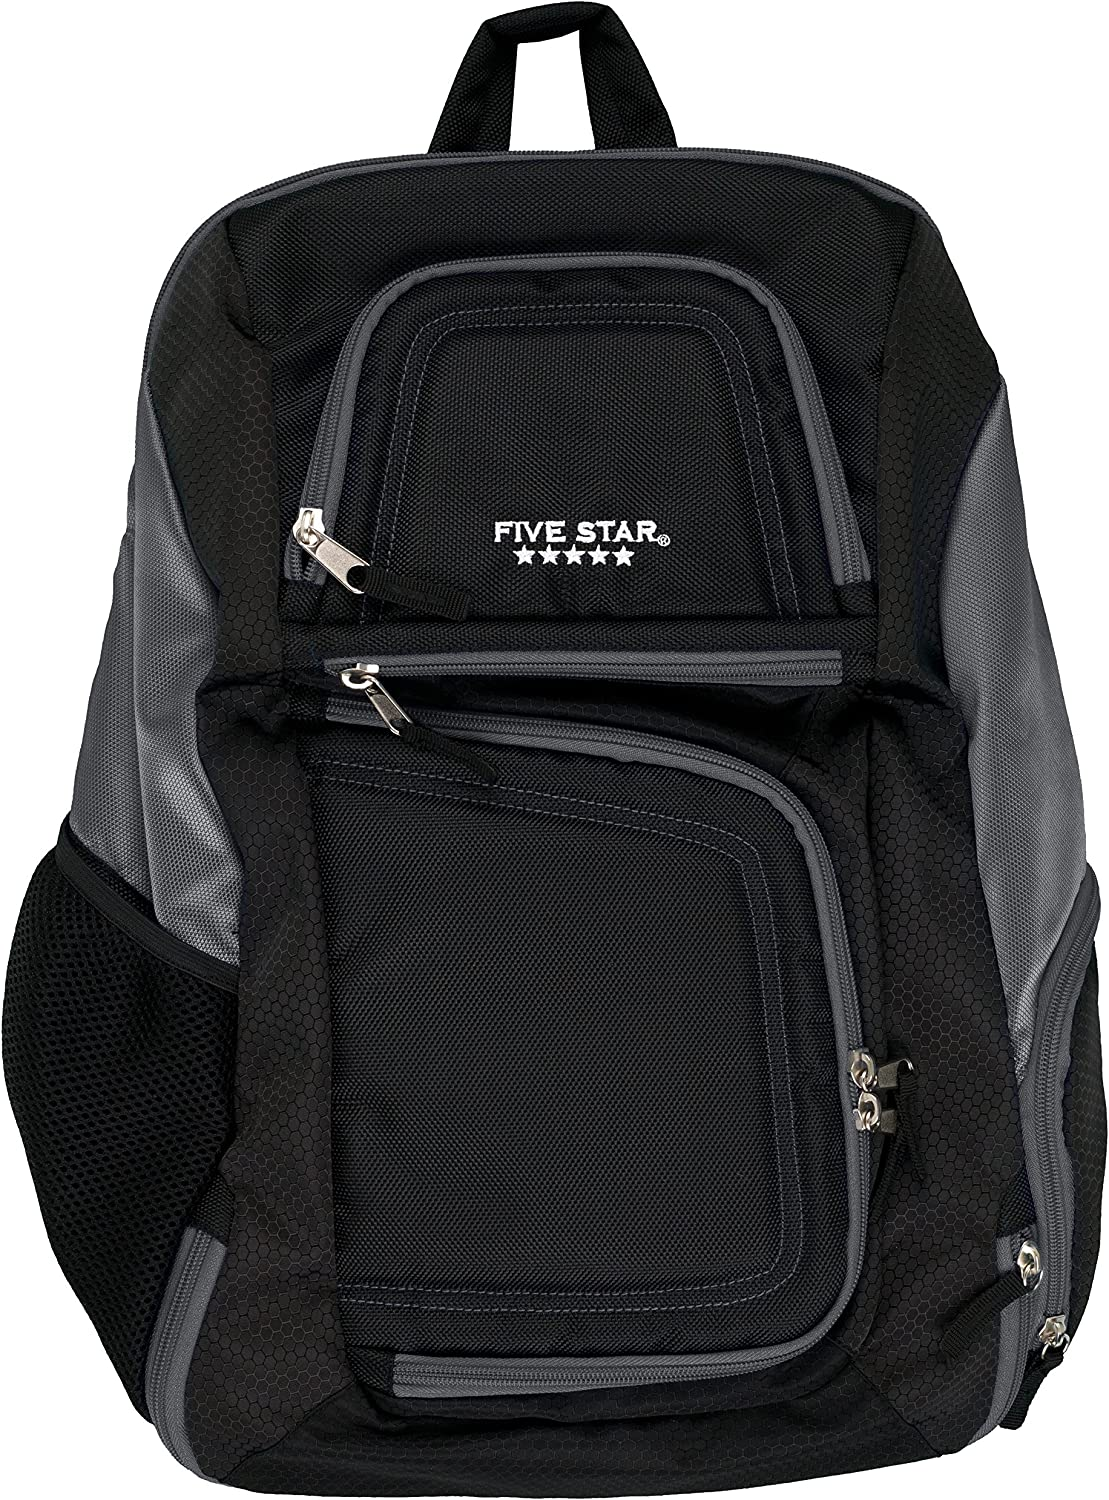 Five Star Backpack with Insulated Storage, Back Pack, Dark Gray (73290)